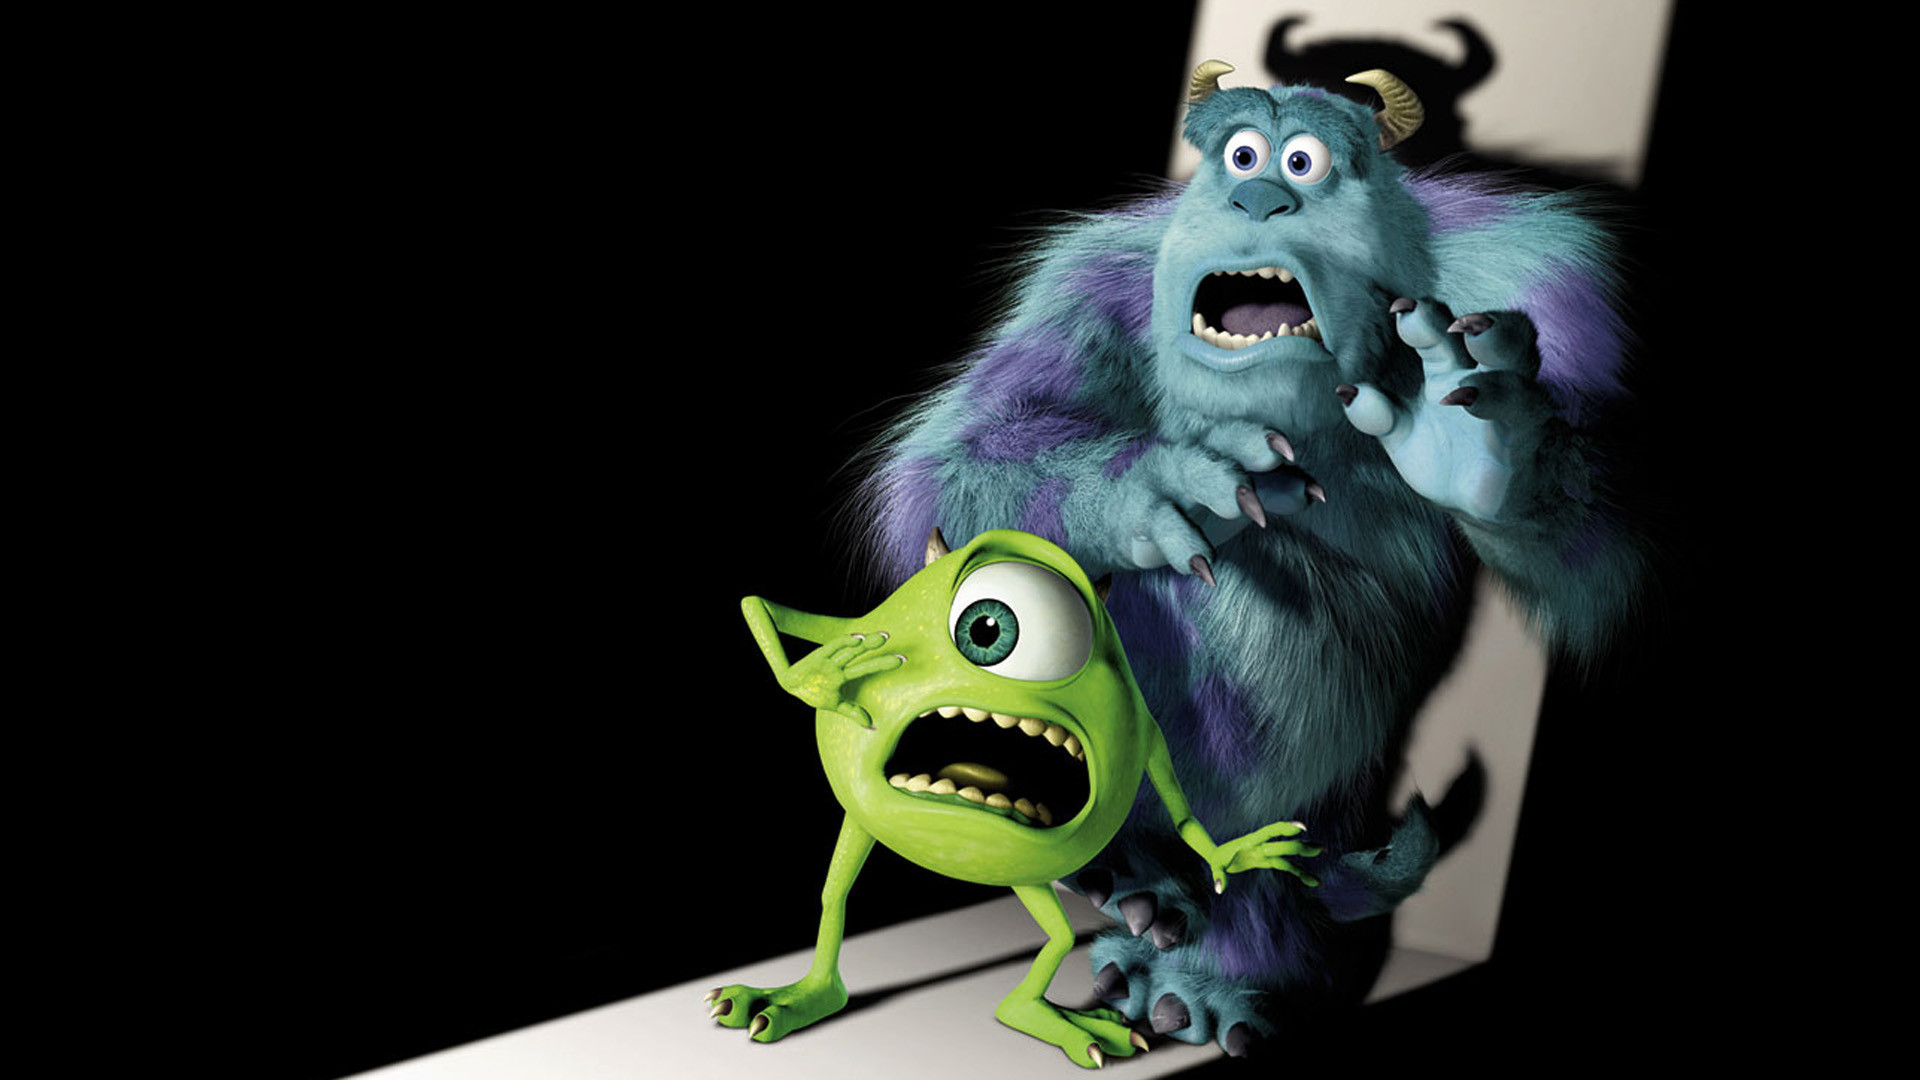 Monsters Inc Wallpapers HD Wallpapers 1920x1080